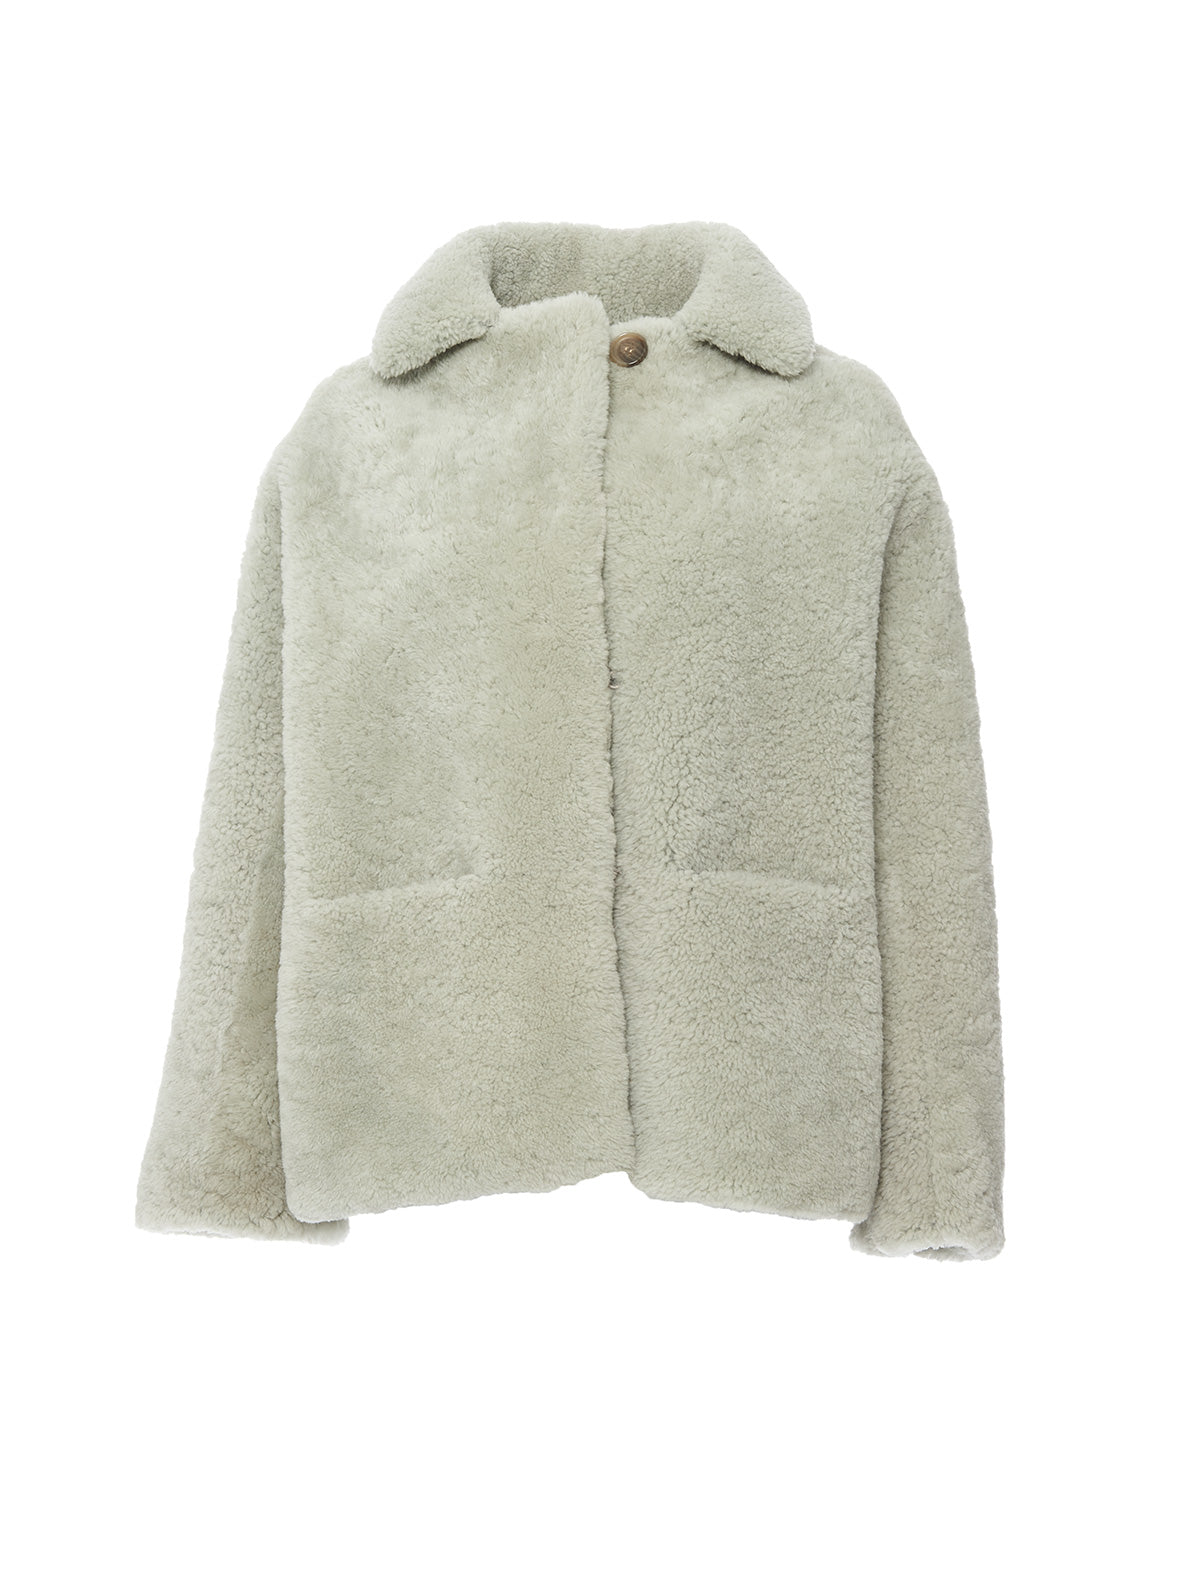 COLLARED SHEARLING JACKET, GLASS<br> PRE-ORDER